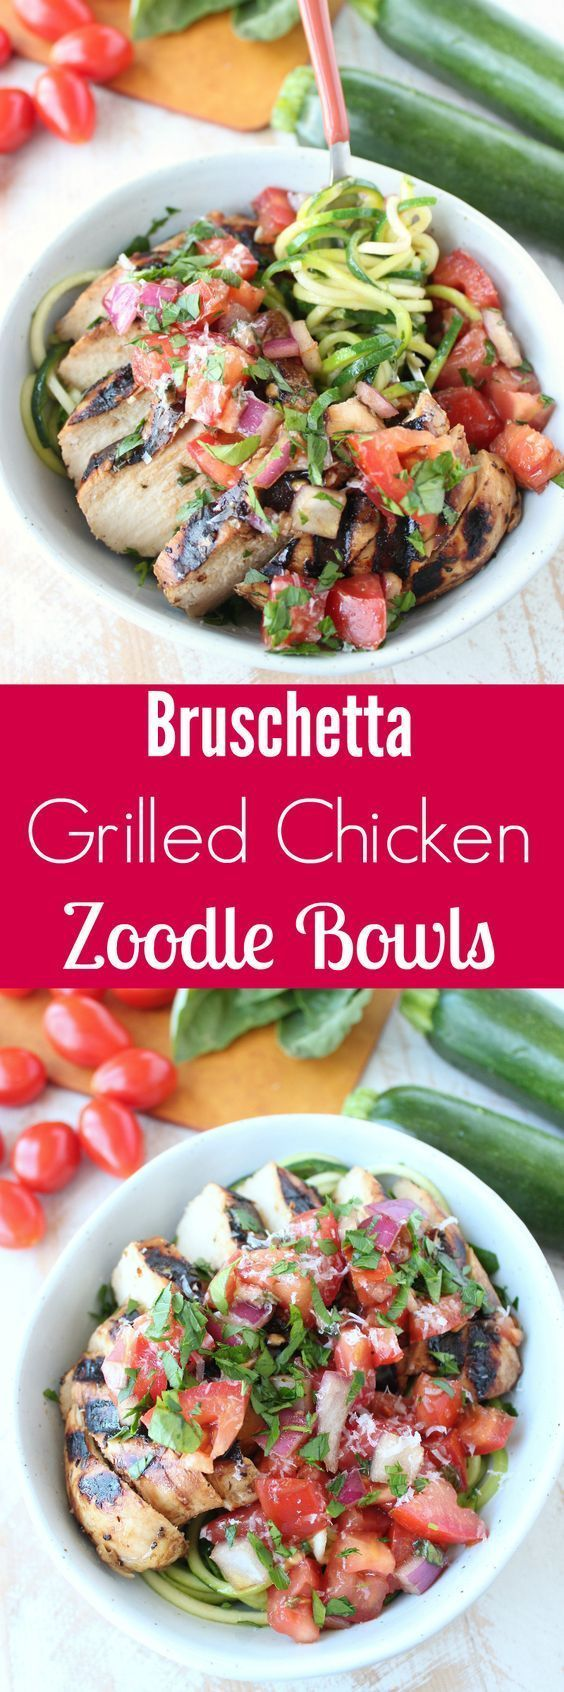 Bruschetta Grilled Chicken Zoodle Bowls - a healthy, gluten free, bright & flavorful recipe, perfect for Summer!